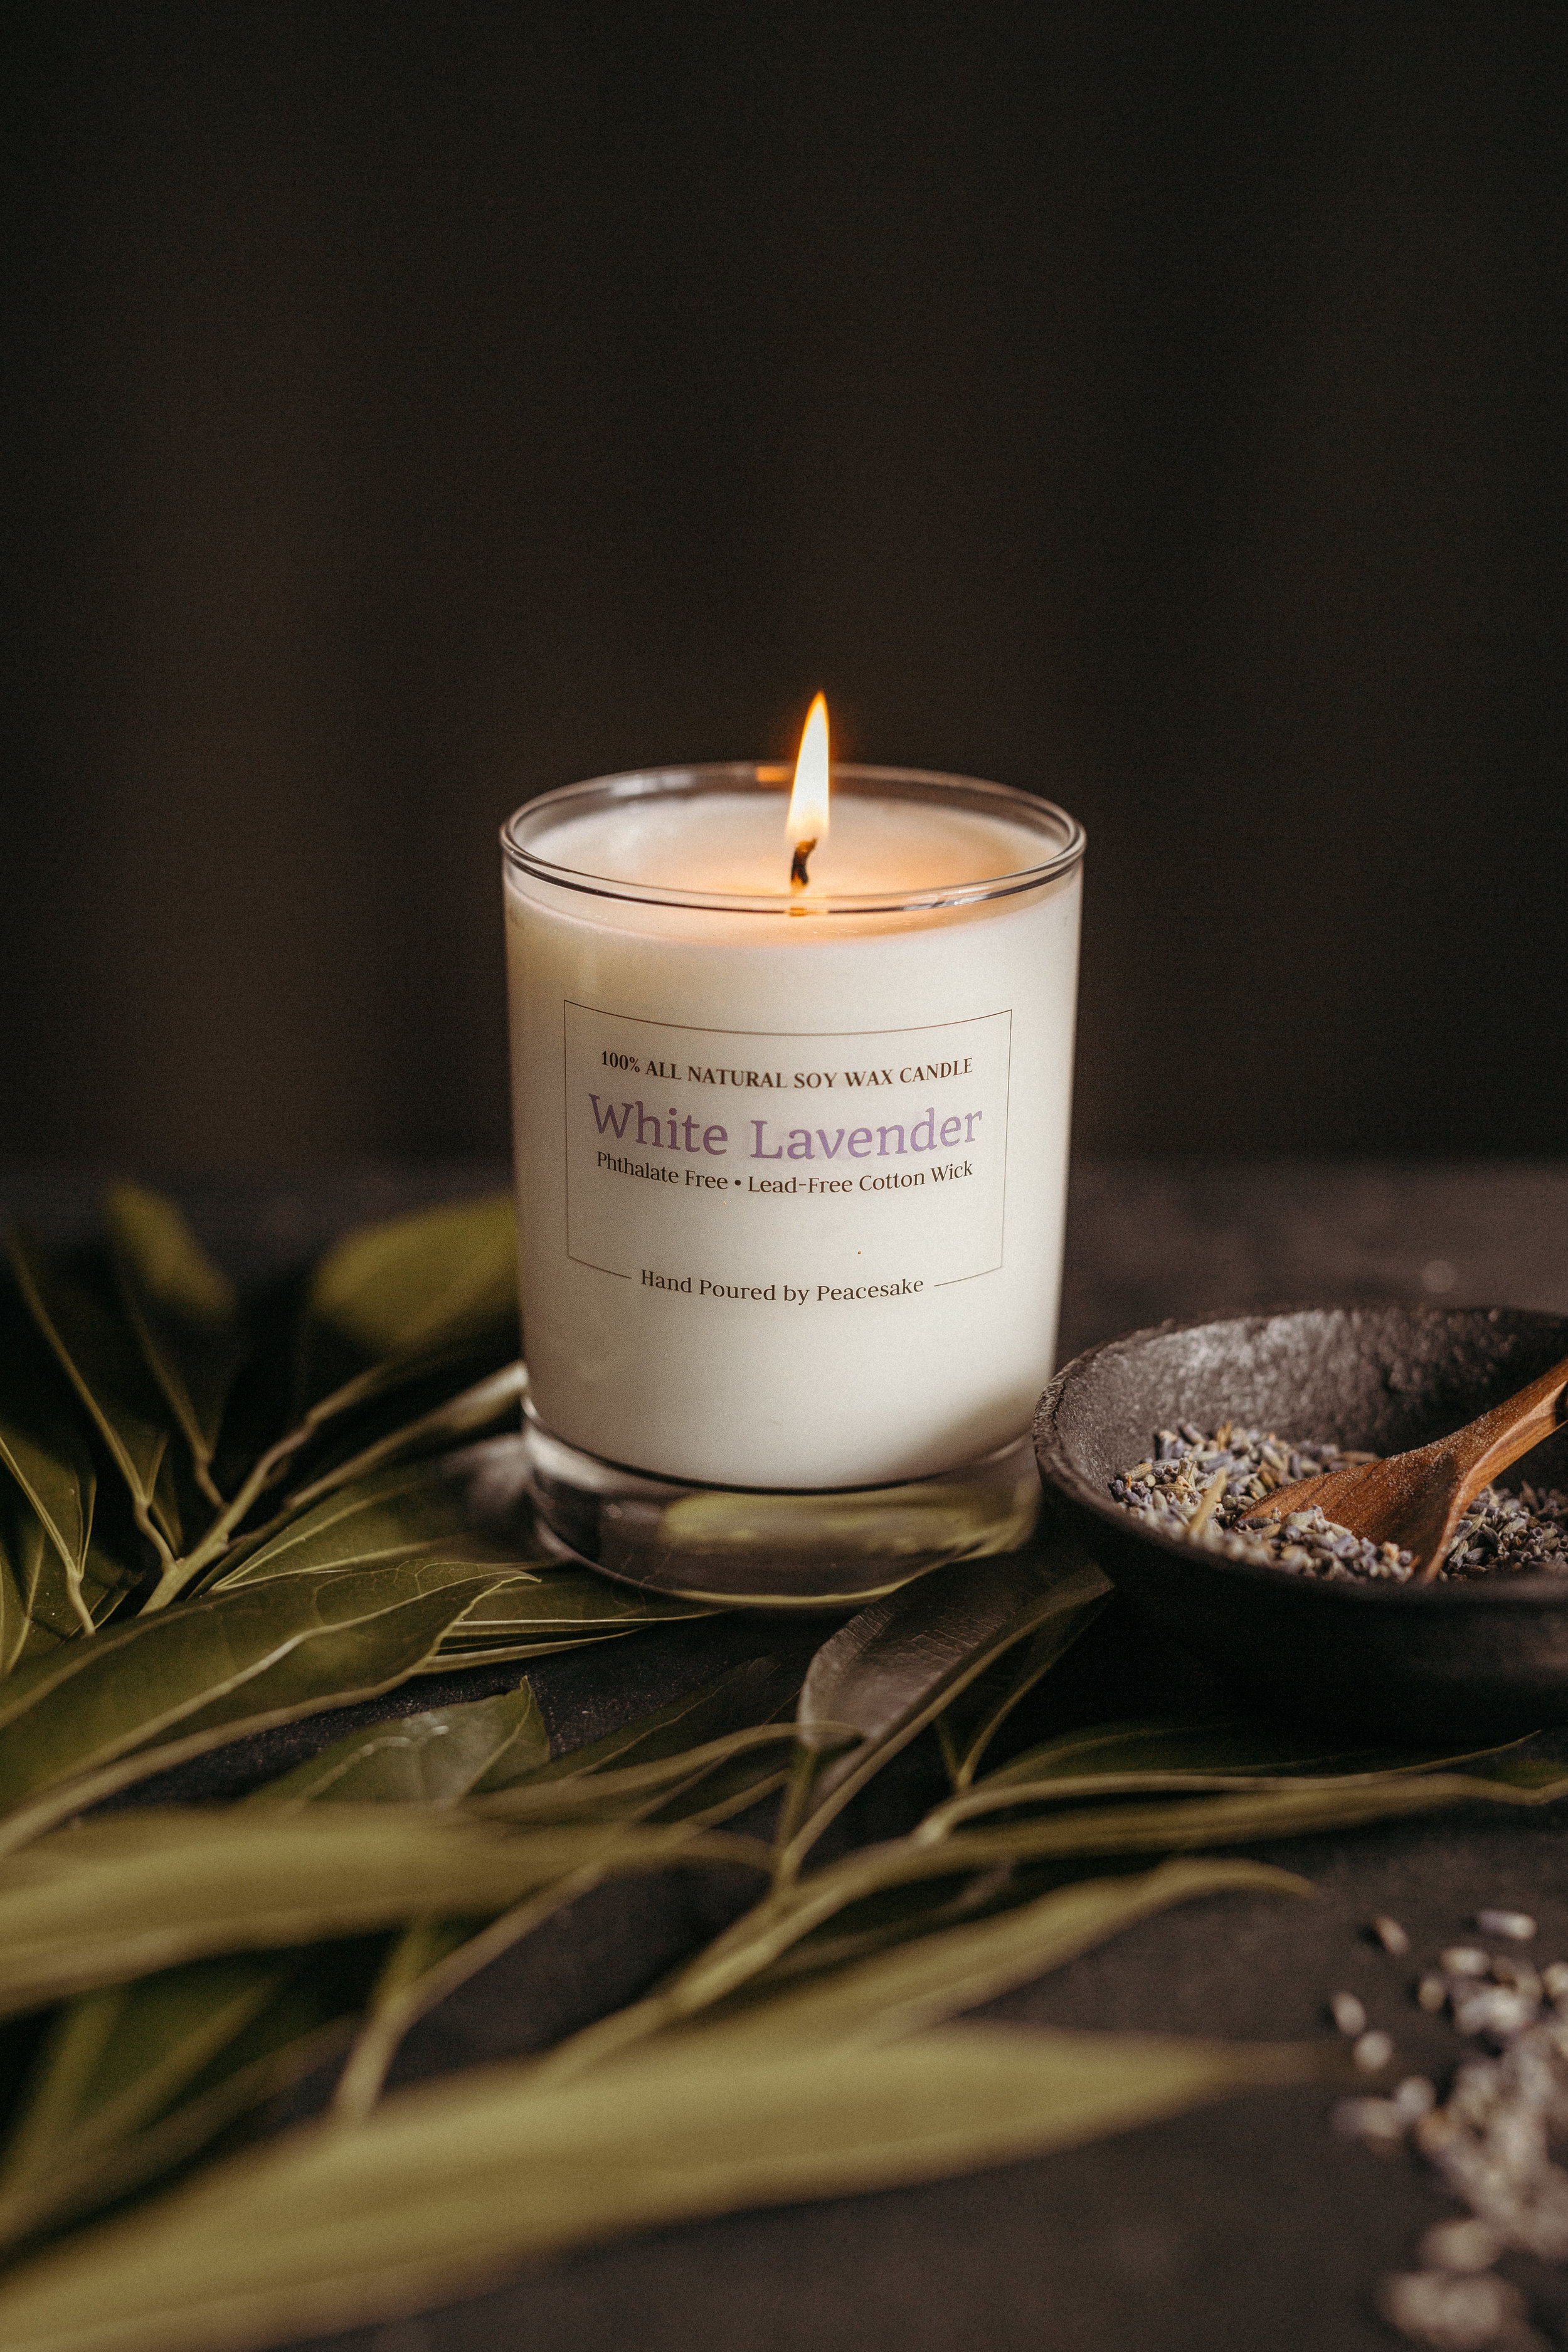 peacesake-all-natural-soy-wax-cotton-wick-vegan-candle-phthalate-free-white-birch-pine-forest-lavender